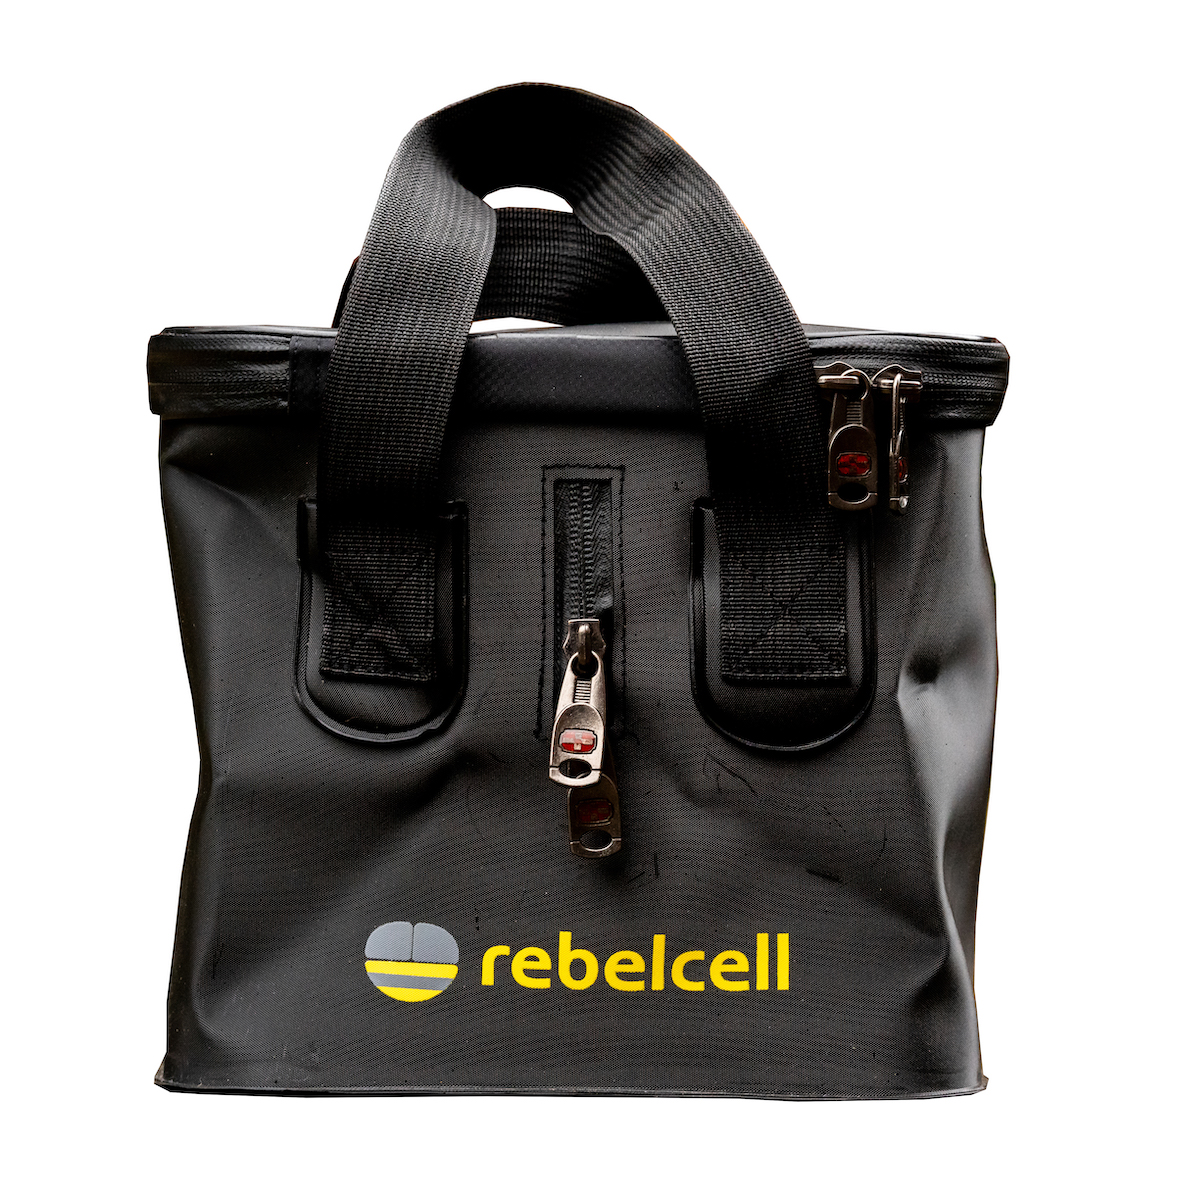 New! Rebelcell battery bags